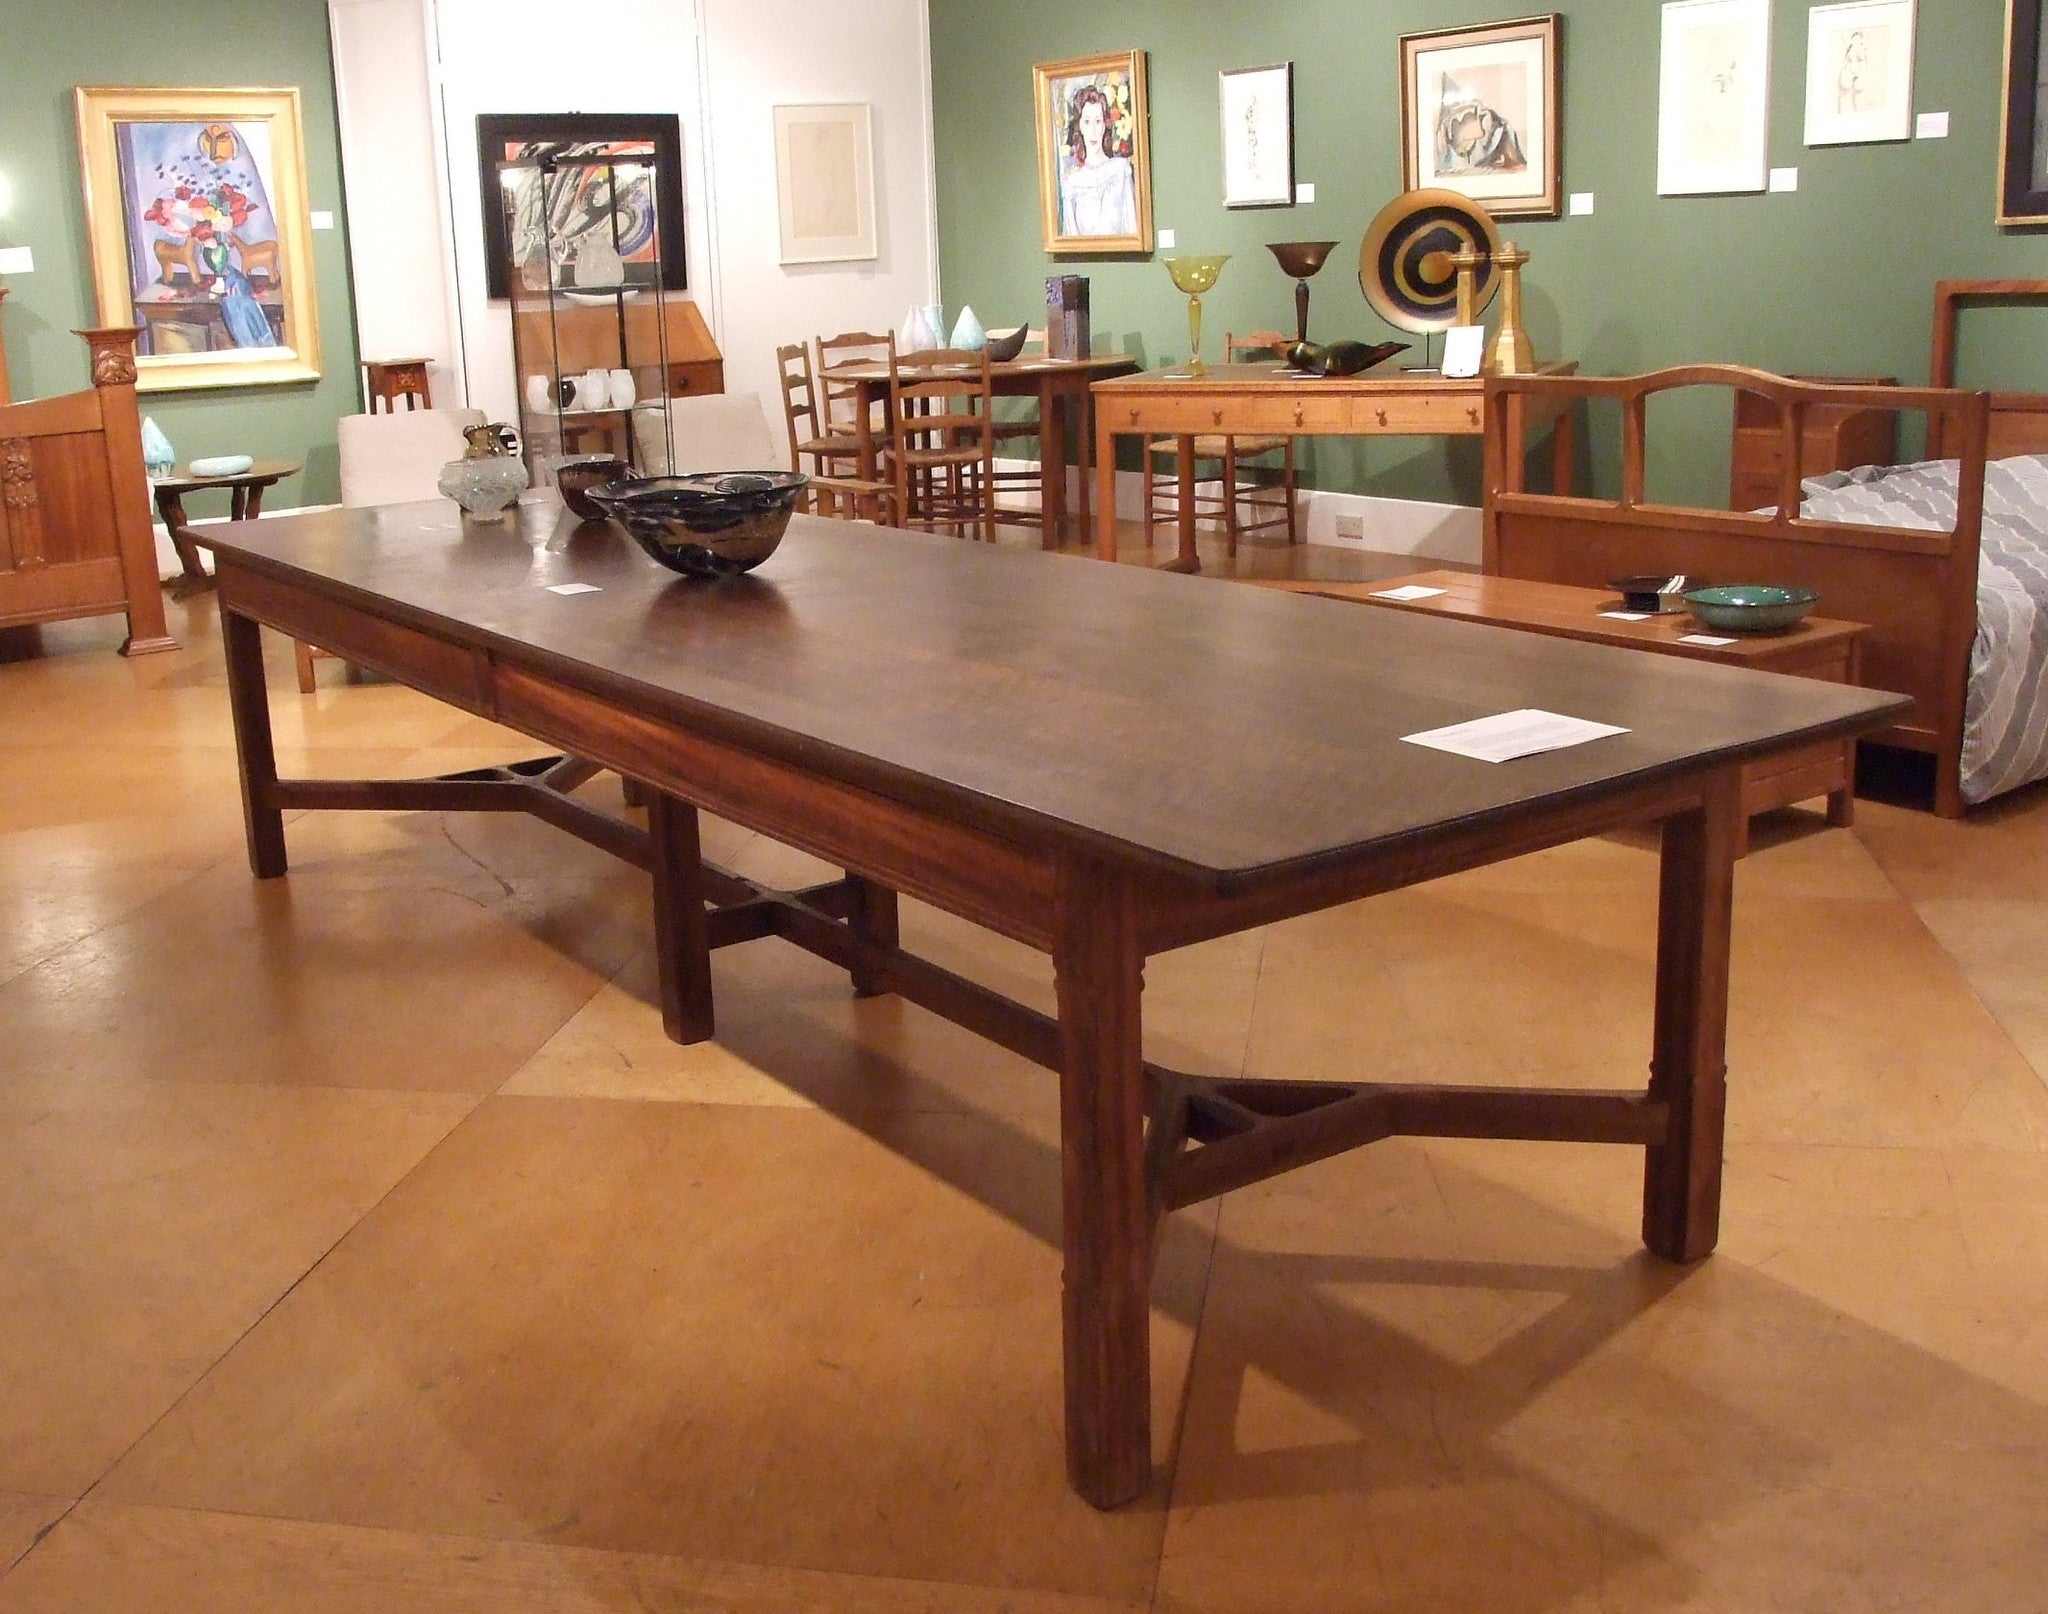 Important Peter Waals Dining Or Board Room Table 12 Foot Long!